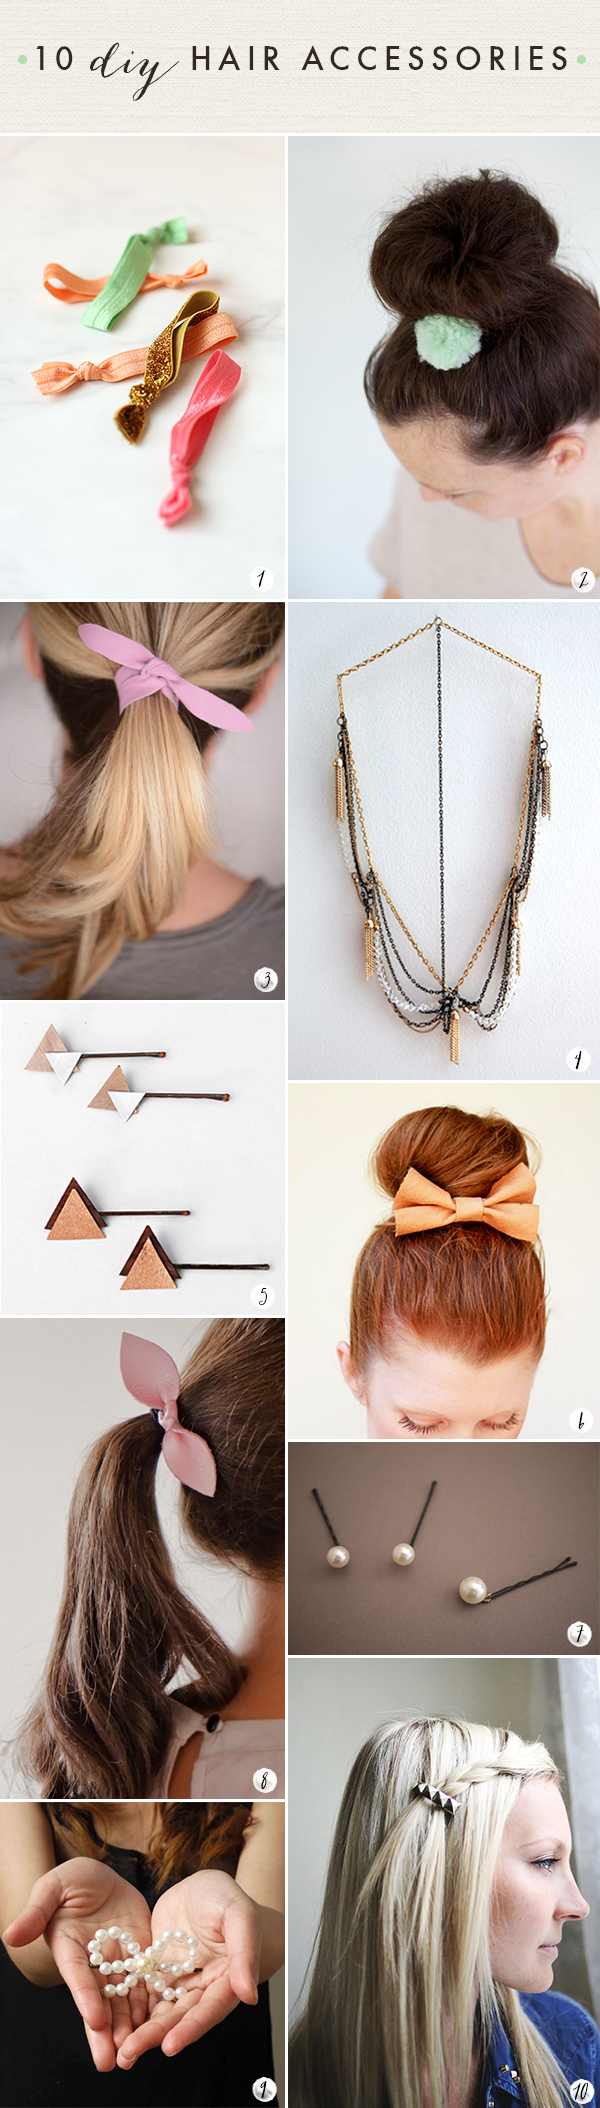 10-diy-hair-accessories